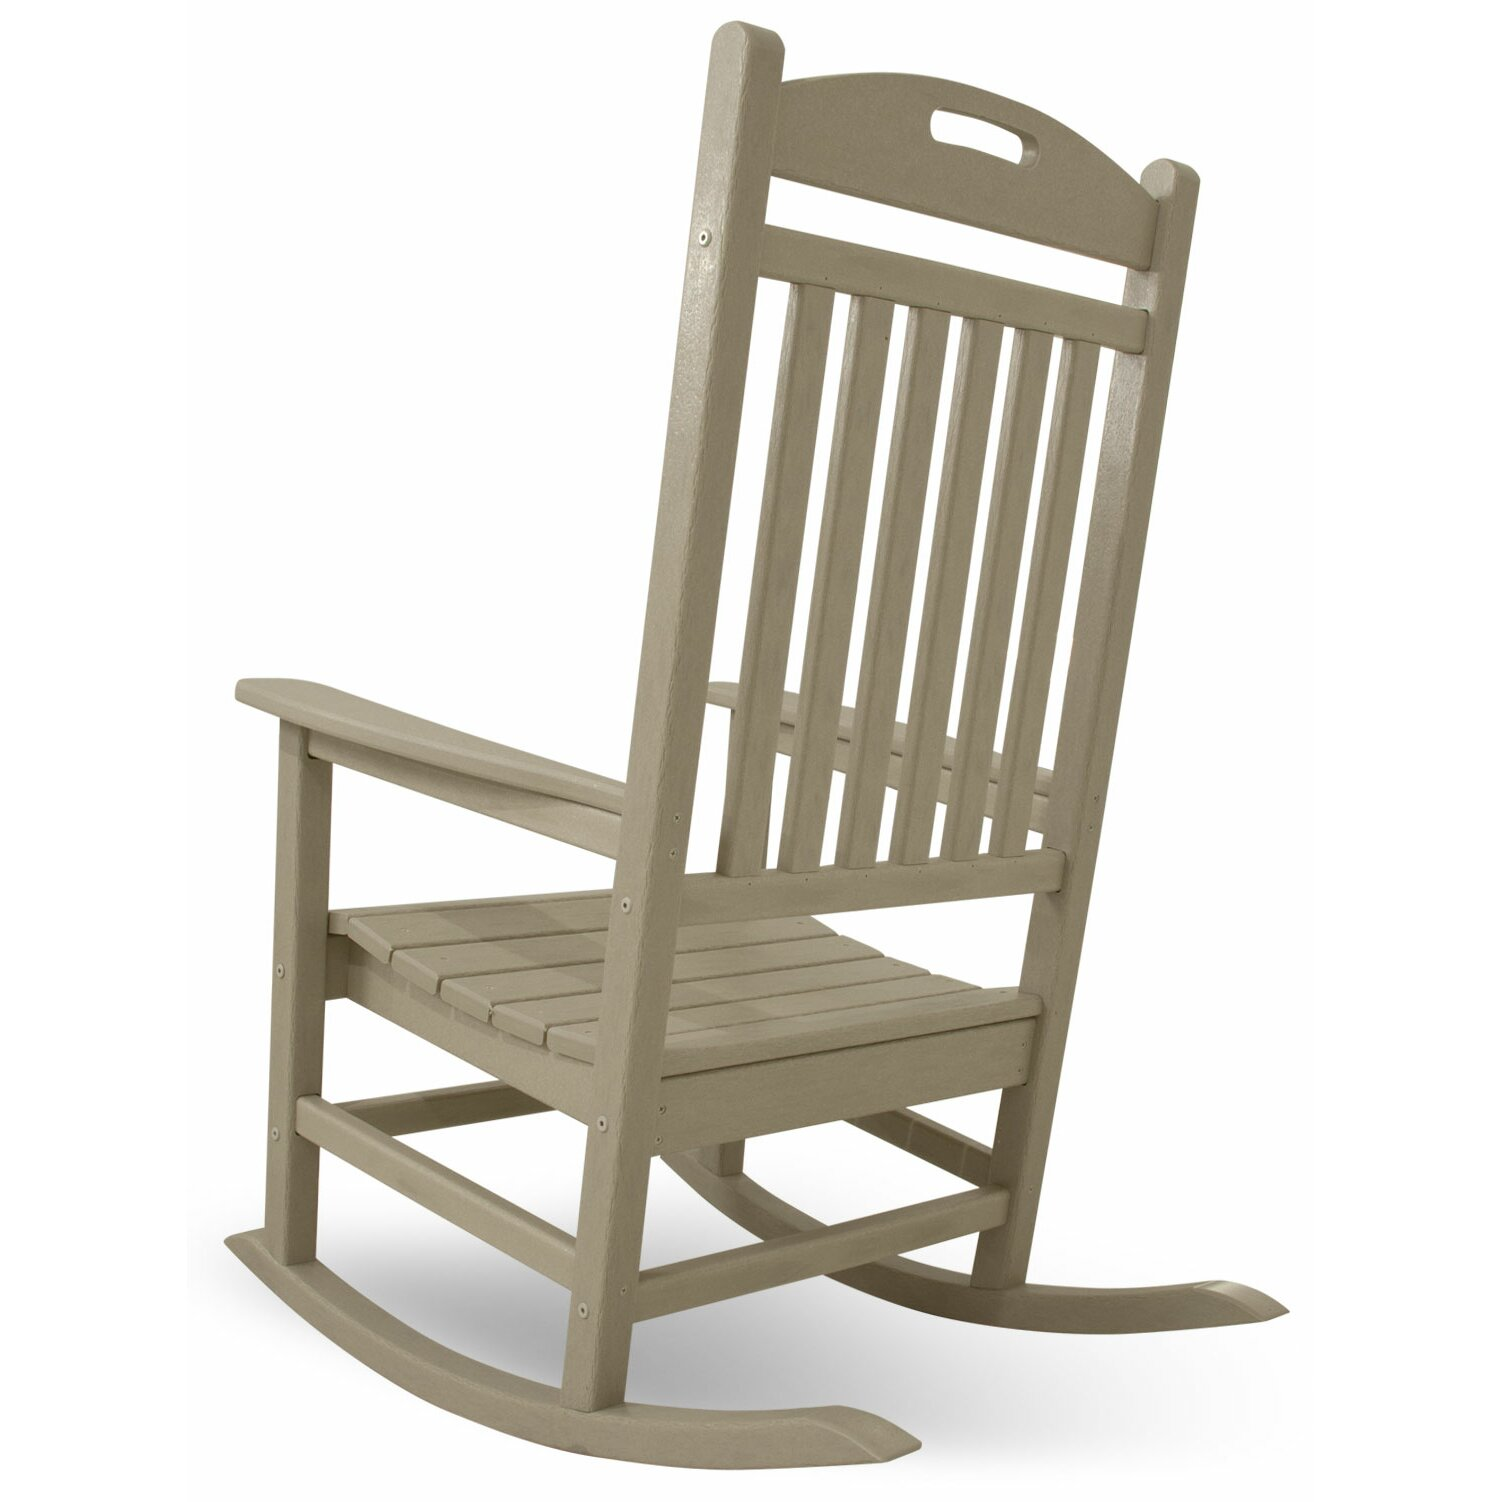 Outdoor Rocking Chairs 100 28 Images Comfortable Outdoor Rocking Chairs 100 Gallery 100